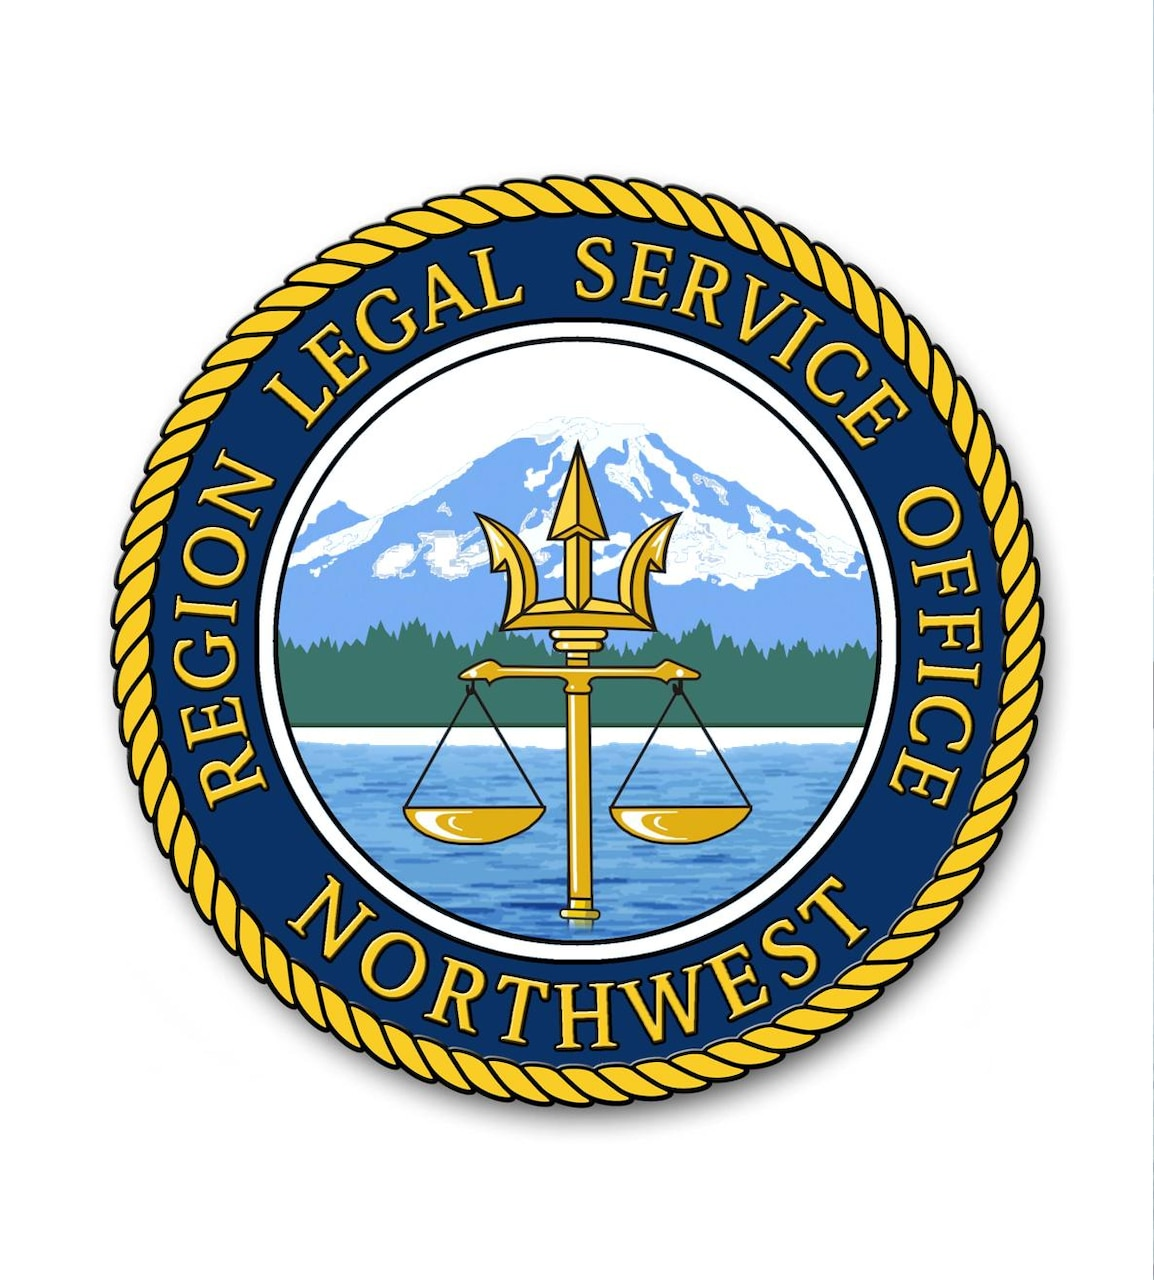 Region Legal Service Office (RLSO) Midwest